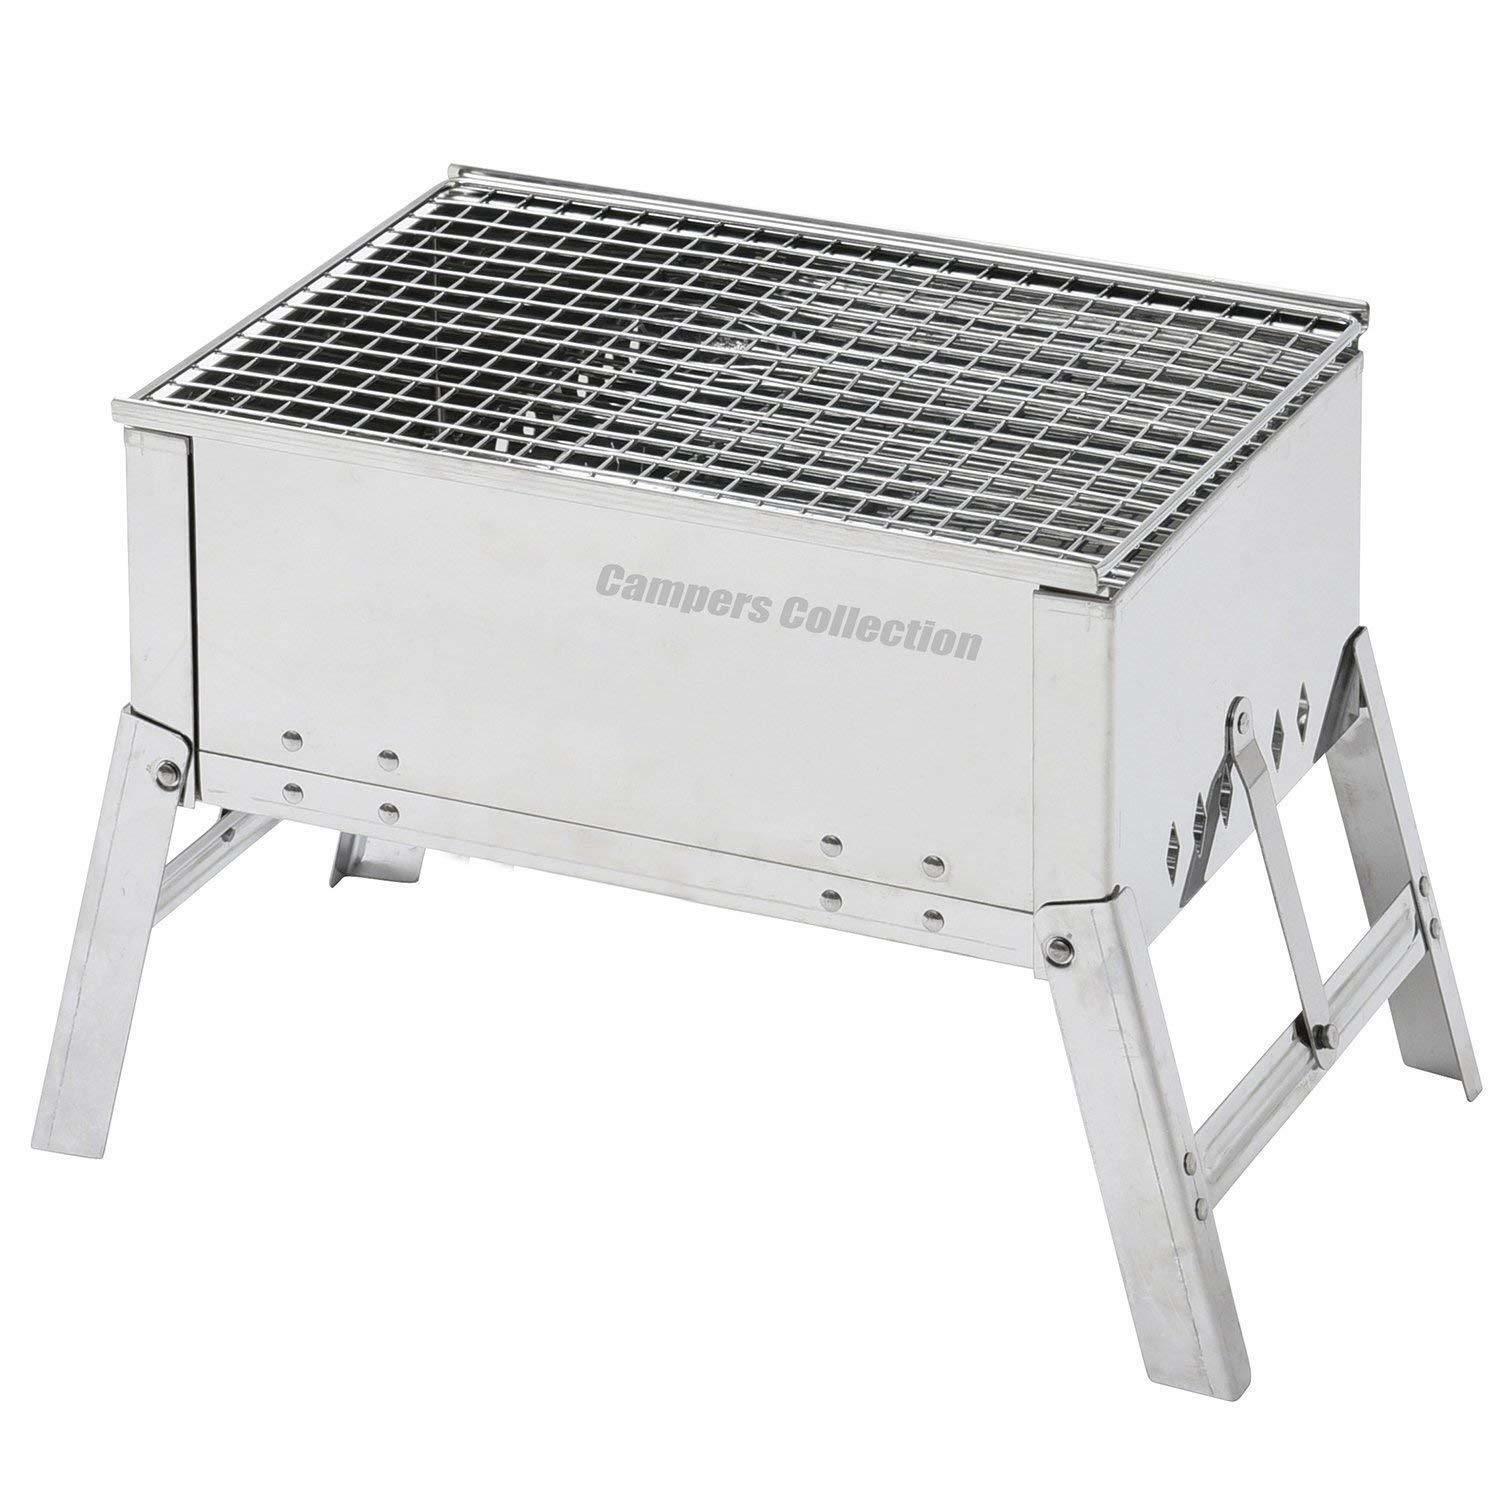 Yakitori BBQ Charcoal Grill Barbecue Compact Grill 33x22.5x27.5cm